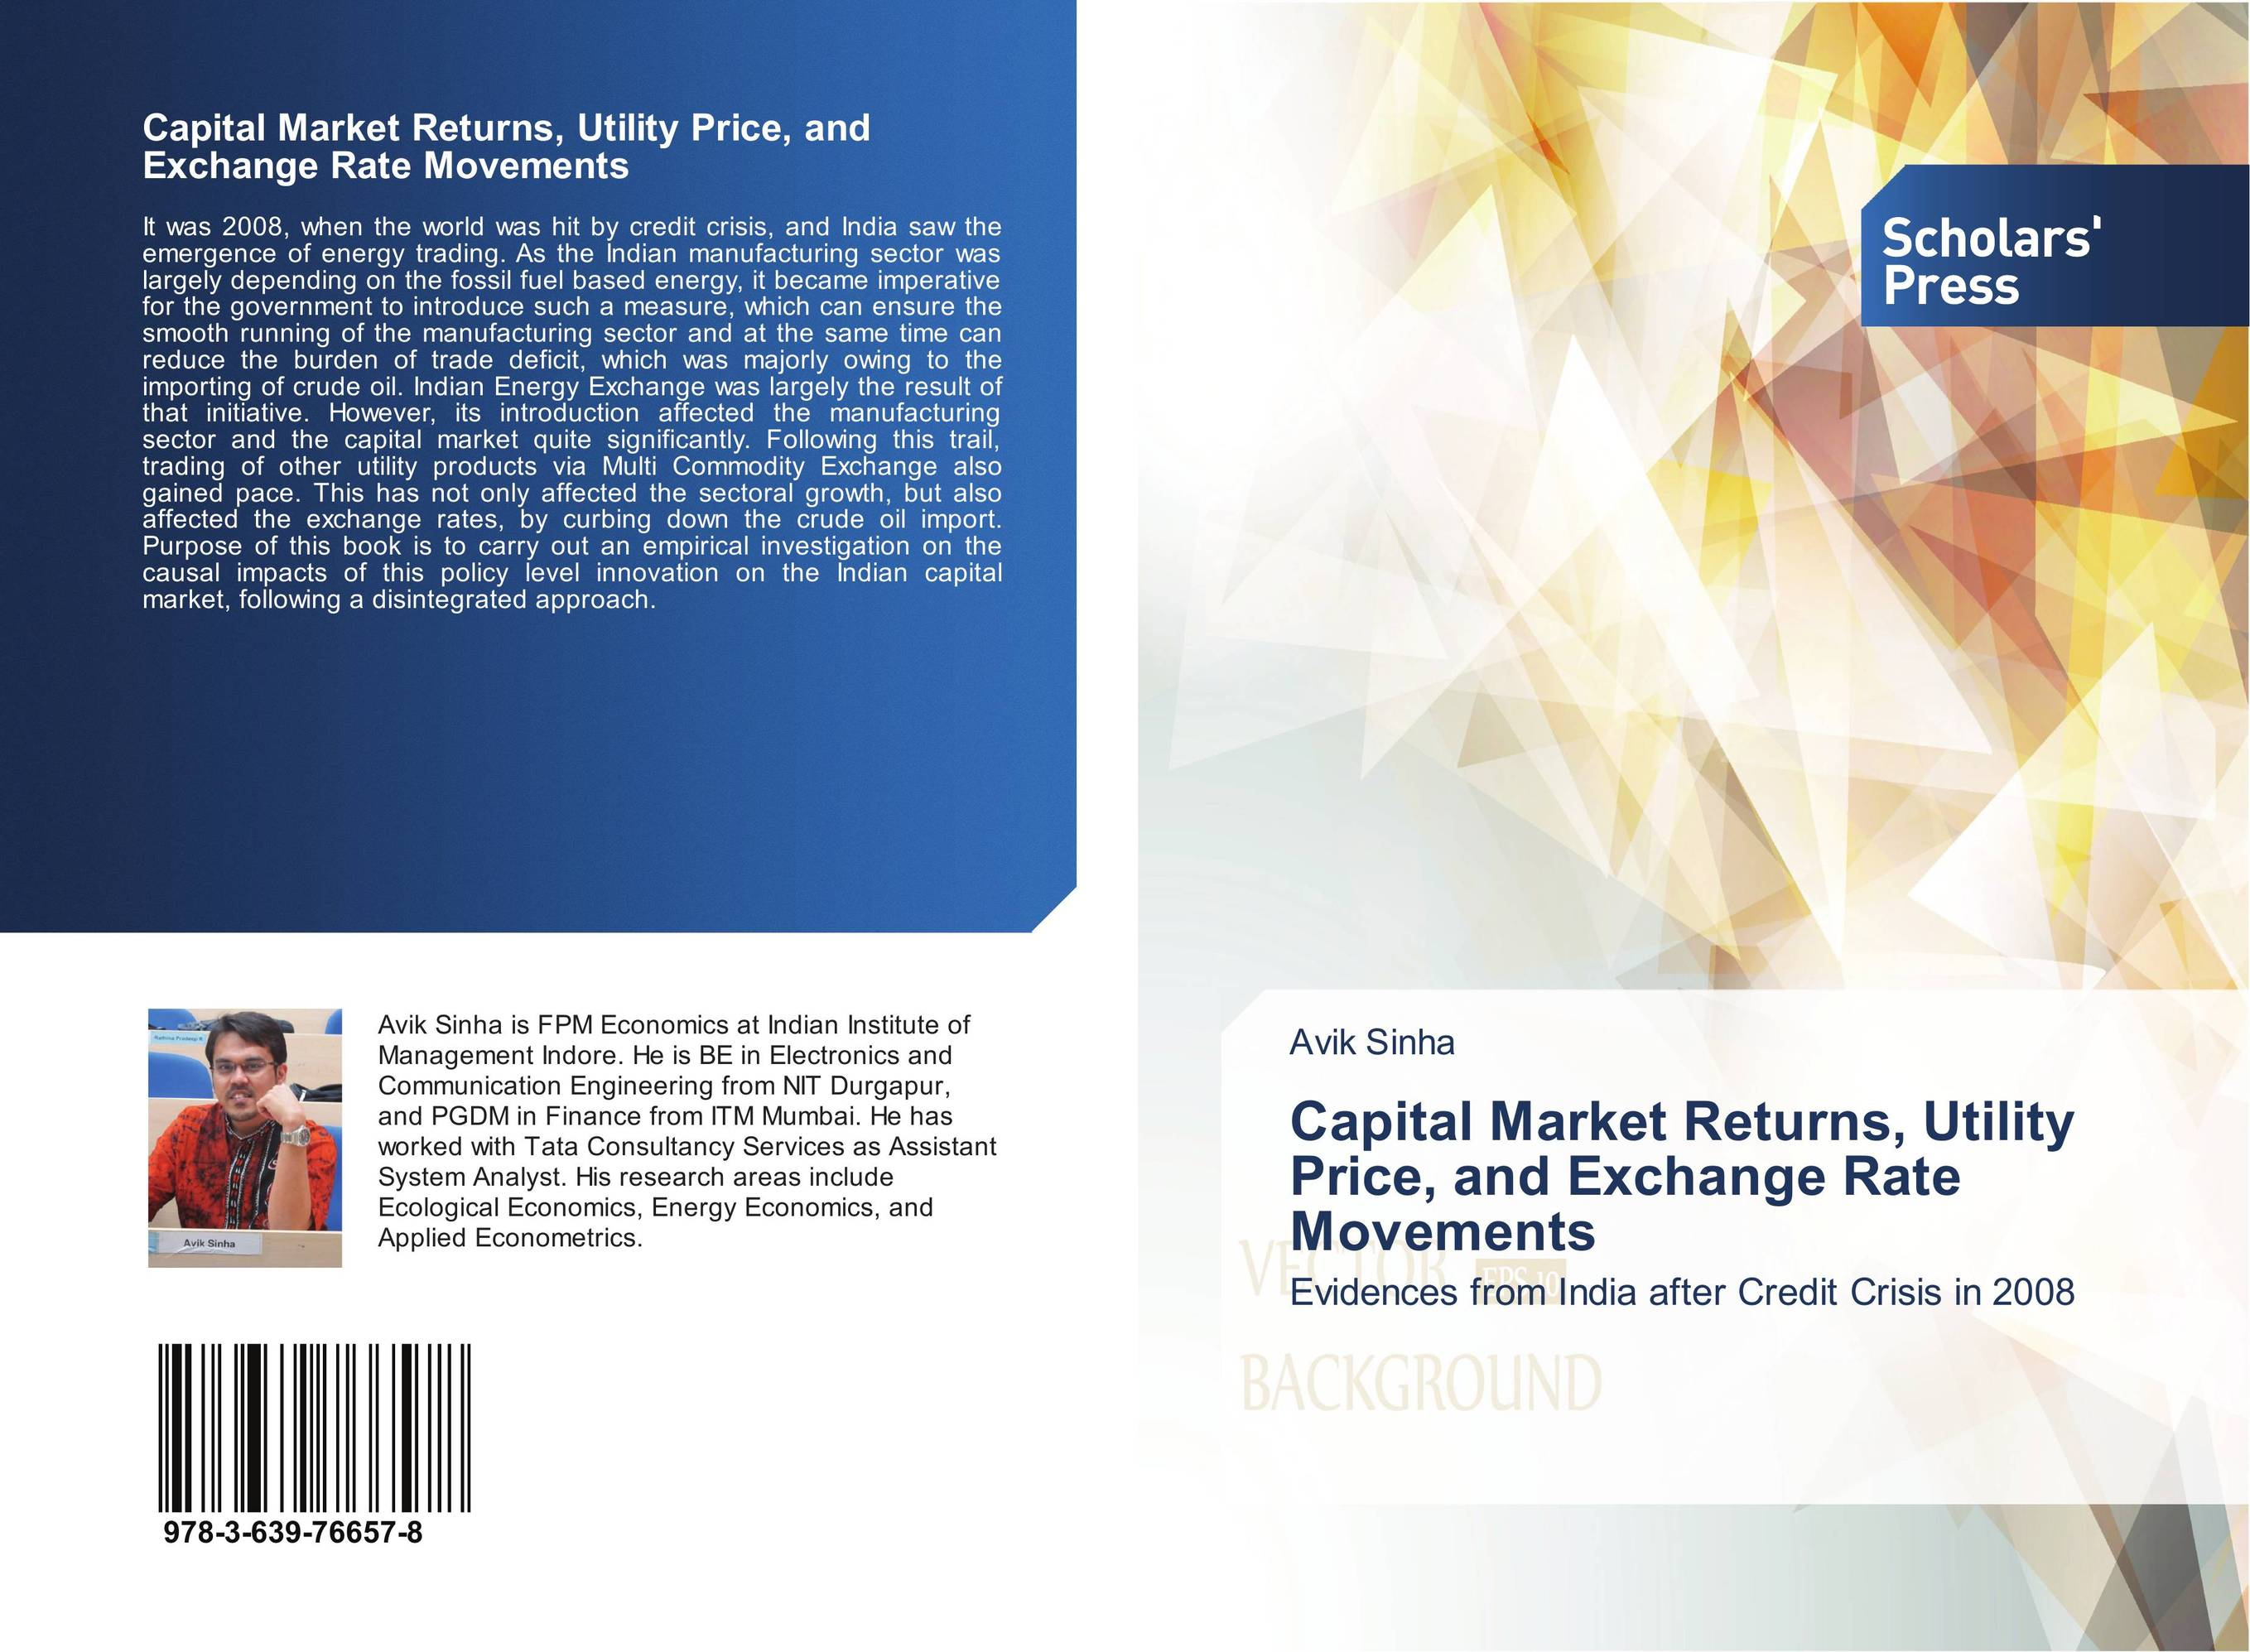 Capital Market Returns, Utility Price, and Exchange Rate Movements evolution of crude oil price term structure